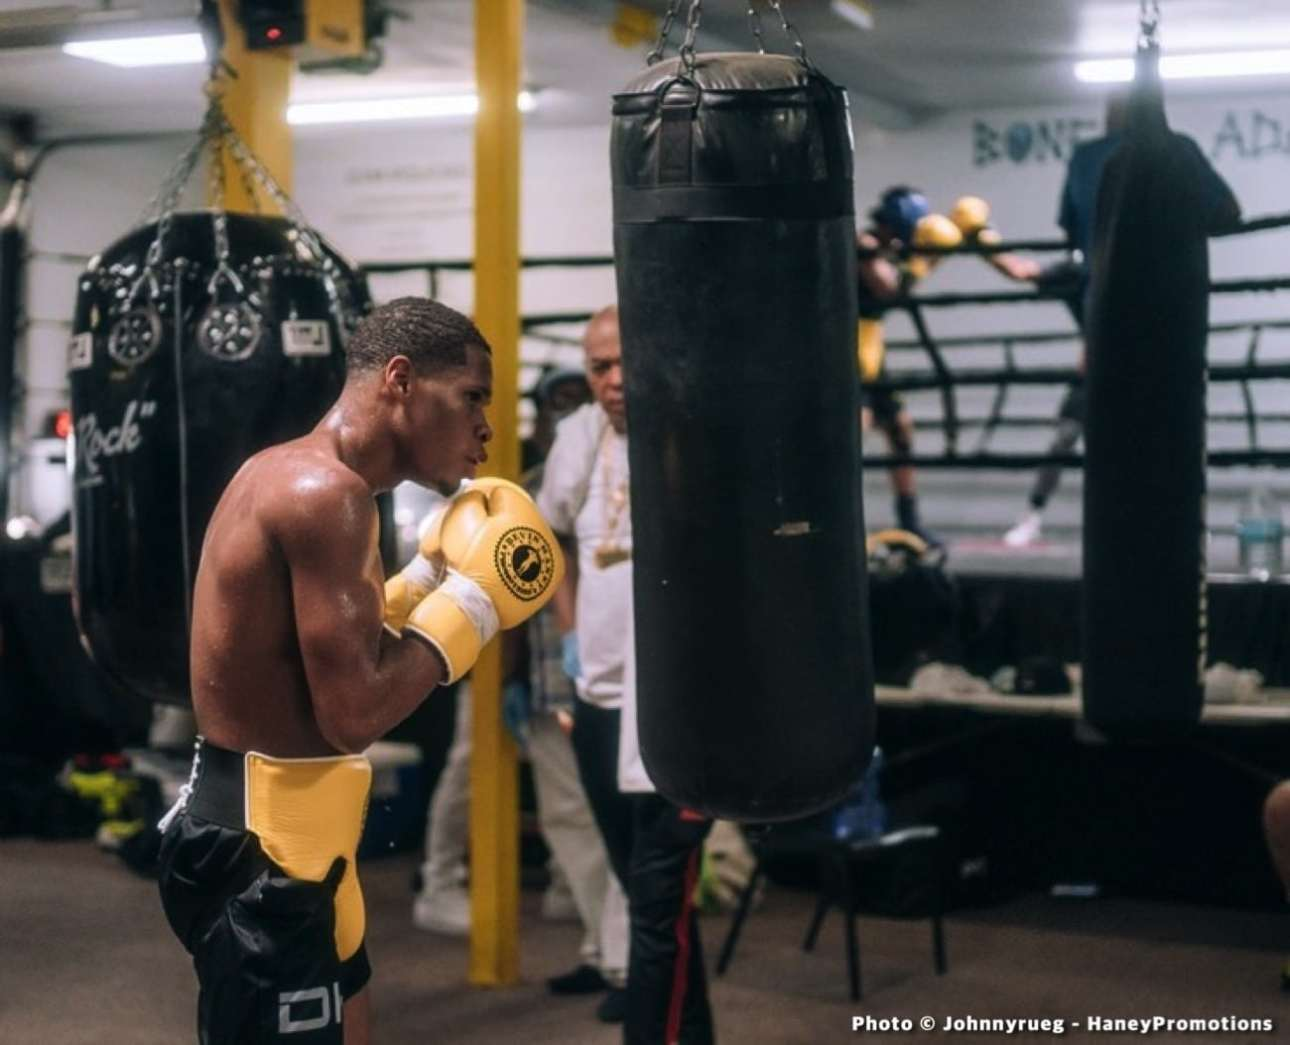 Eddie Hearn expecting Devin Haney is ready for his benchmark against Jorge Linares